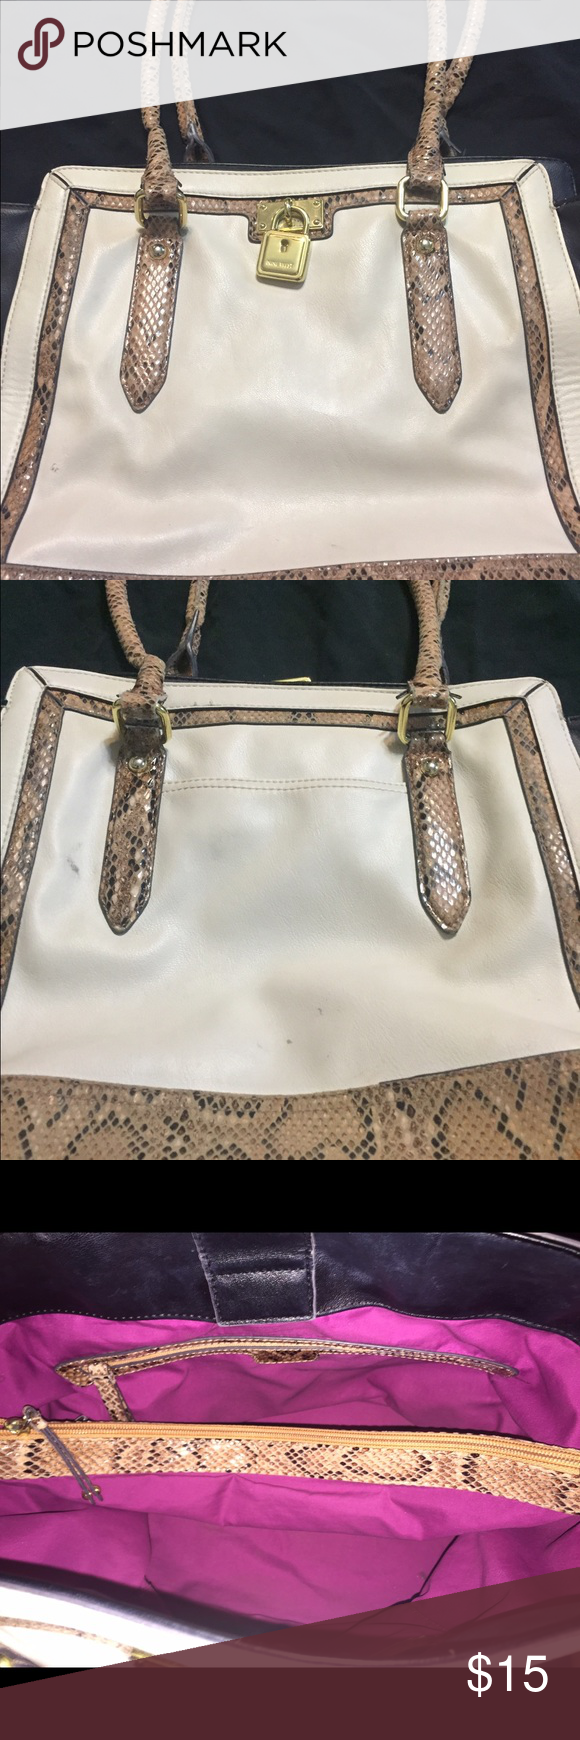 Nine West purse Spacious no stains only 15$ Nine West Bags